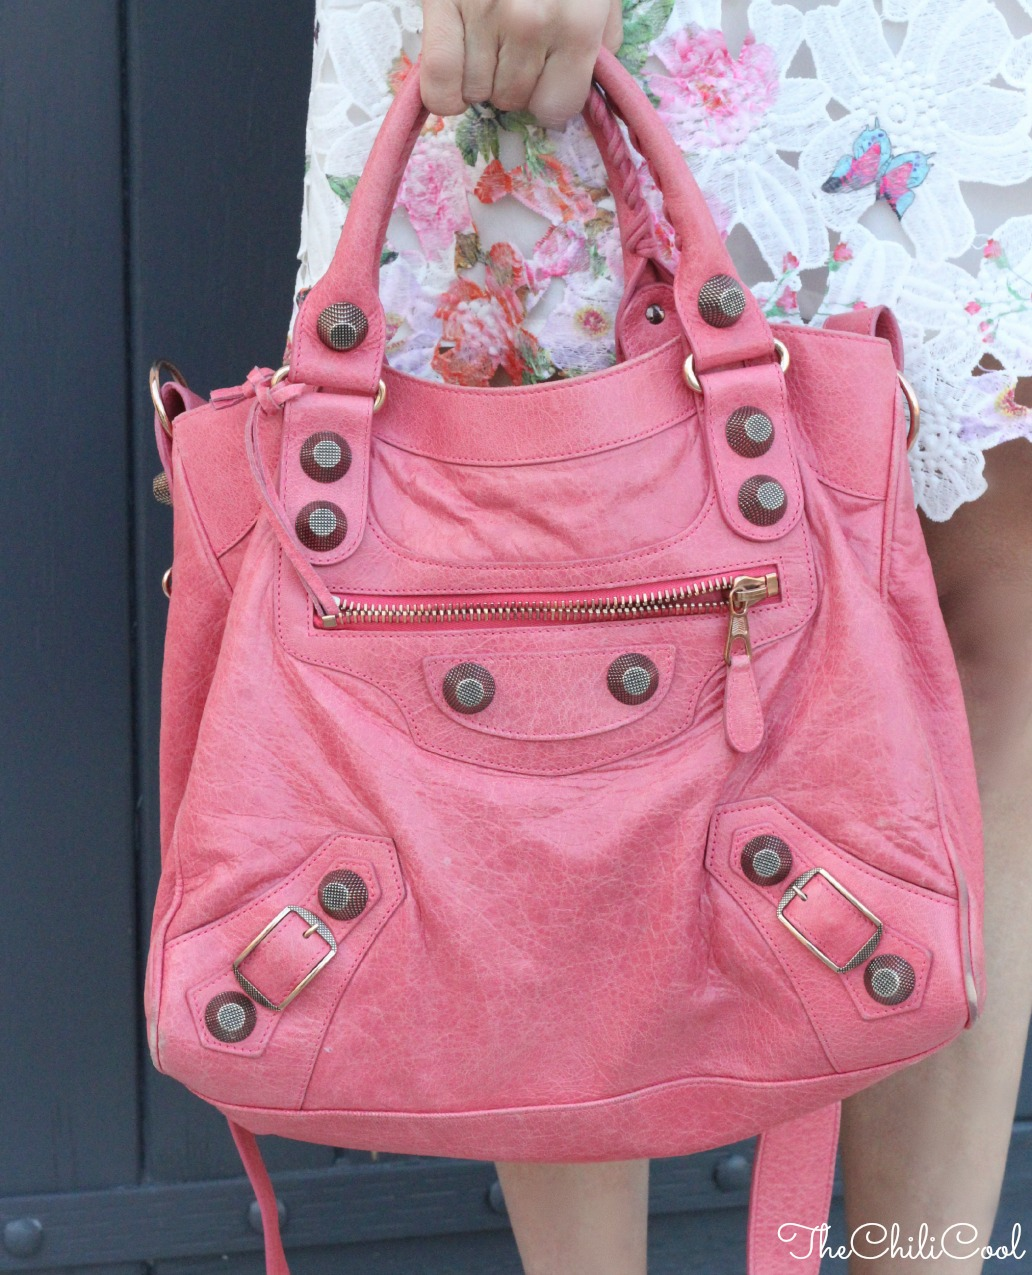 alessia milanese, thechilicool, fashion blog, fashion blogger, balenciaga bag